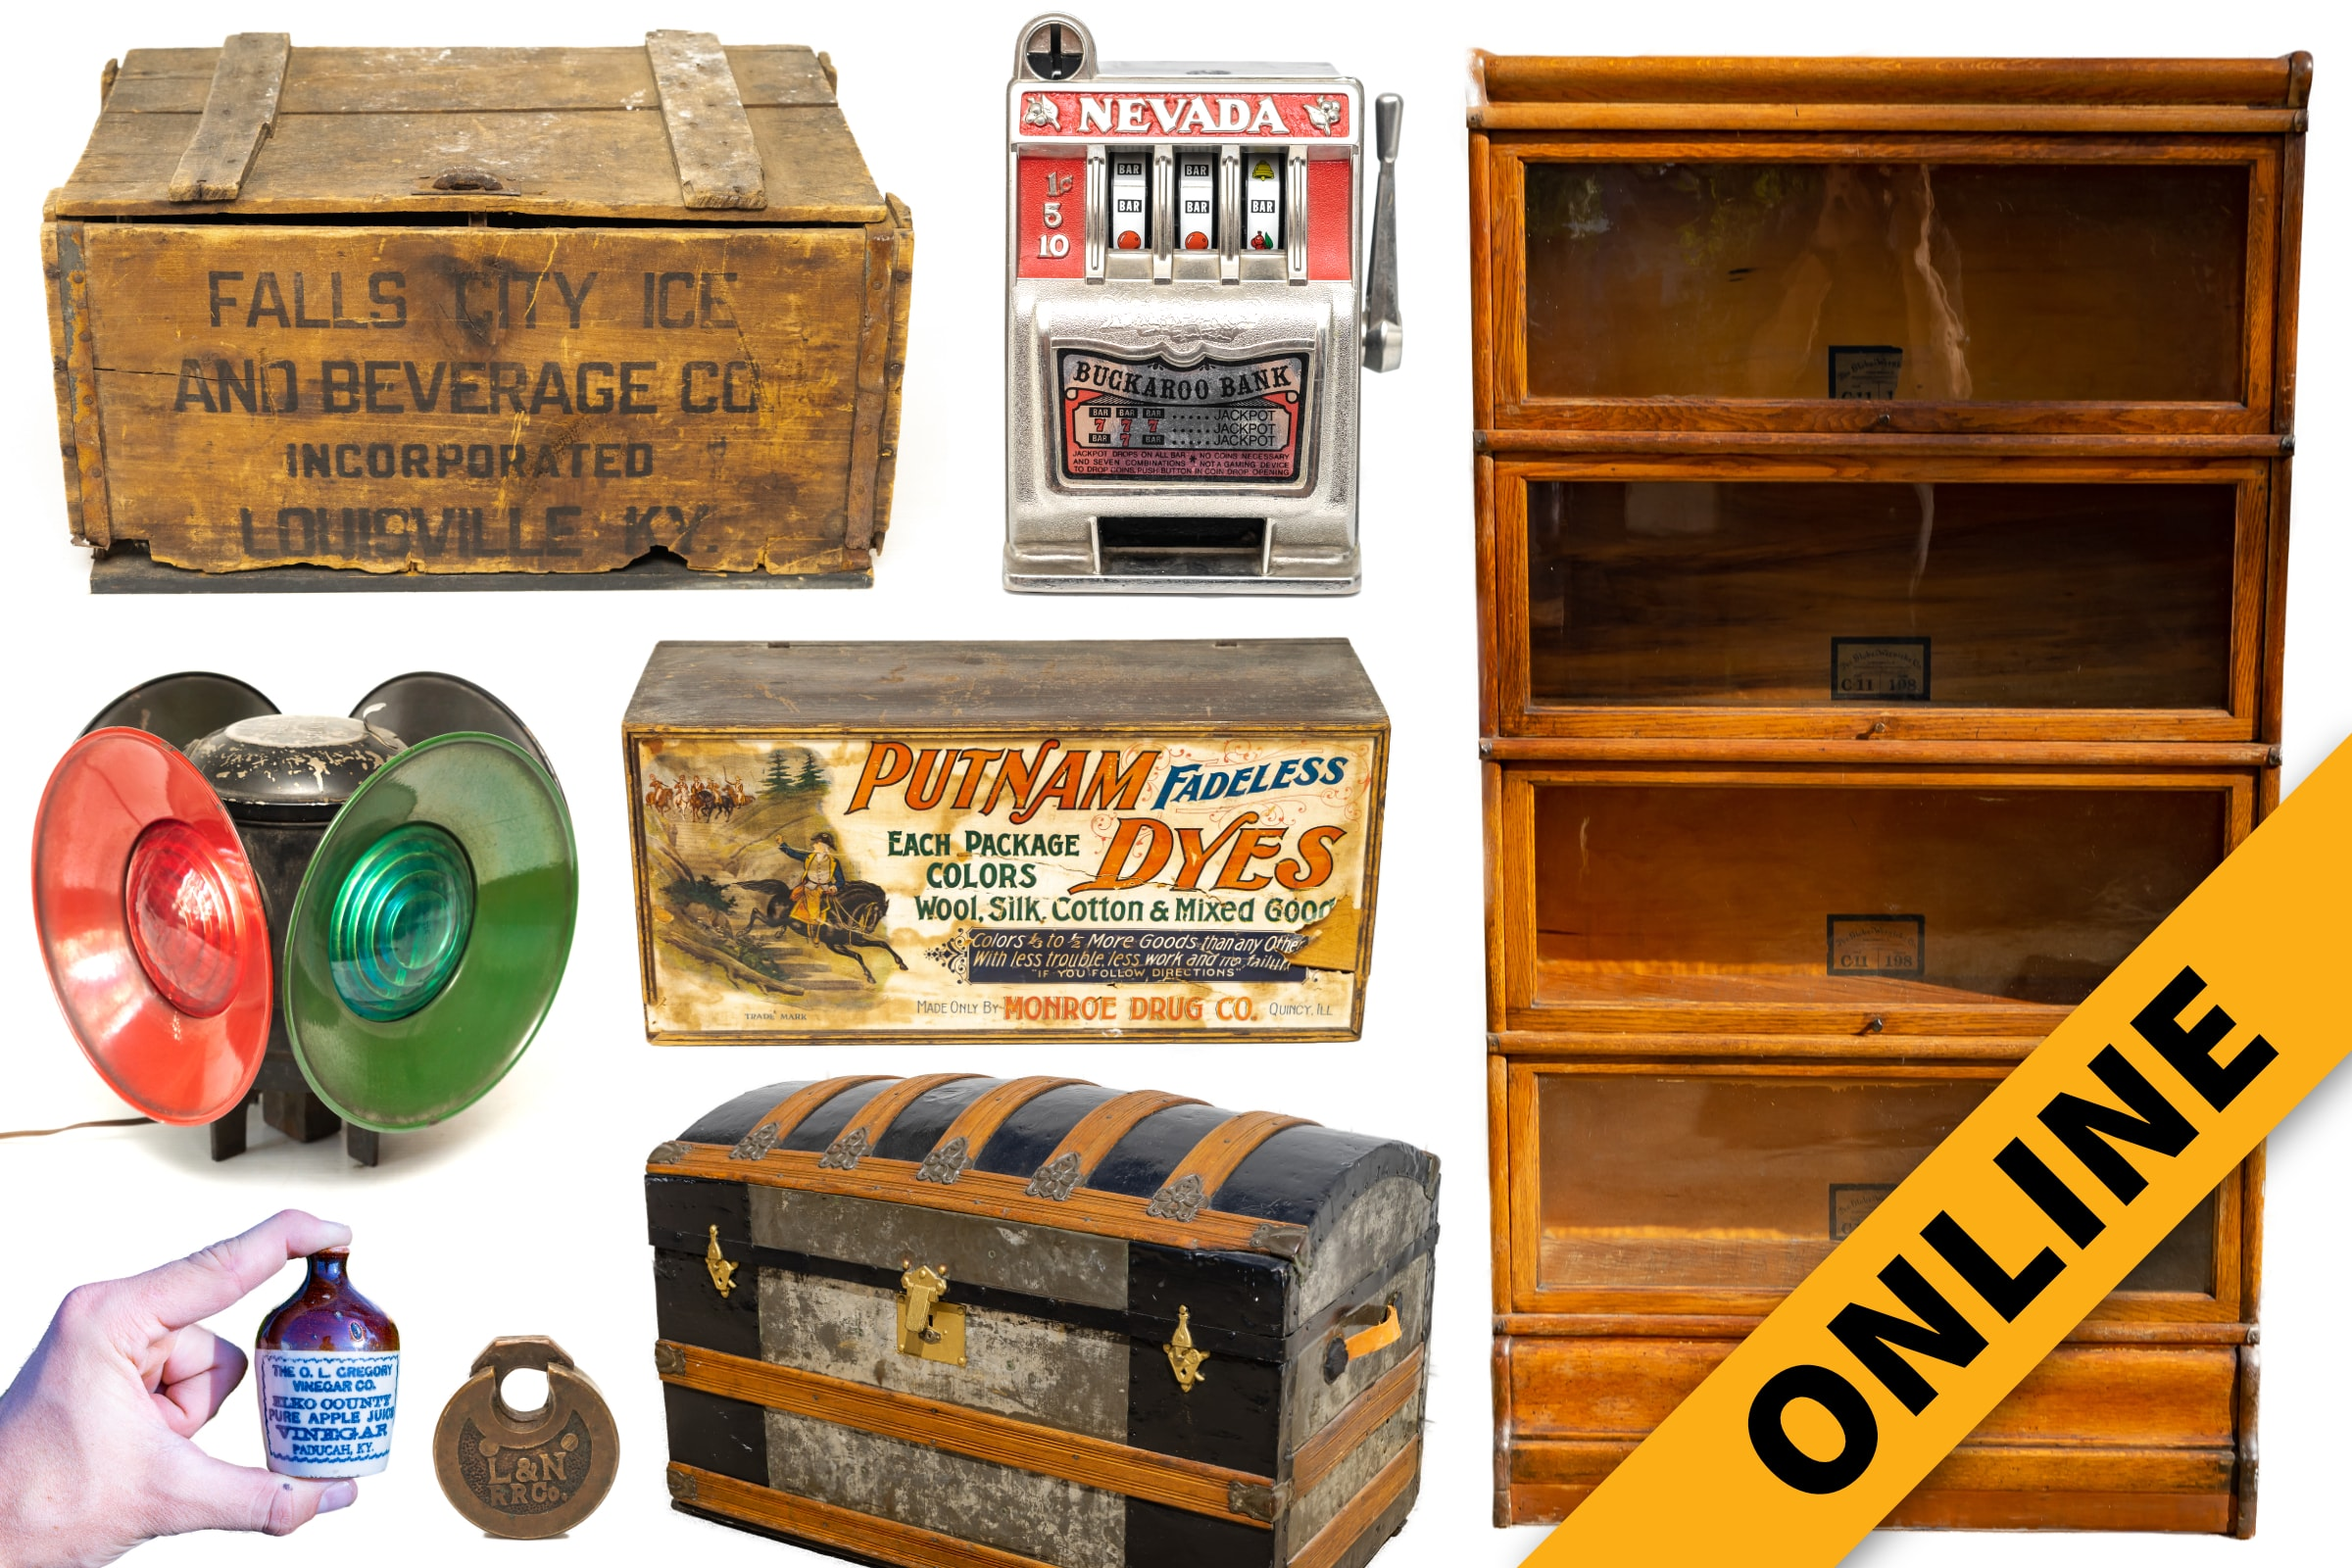 Goodale Lifetime Collection Online Auction